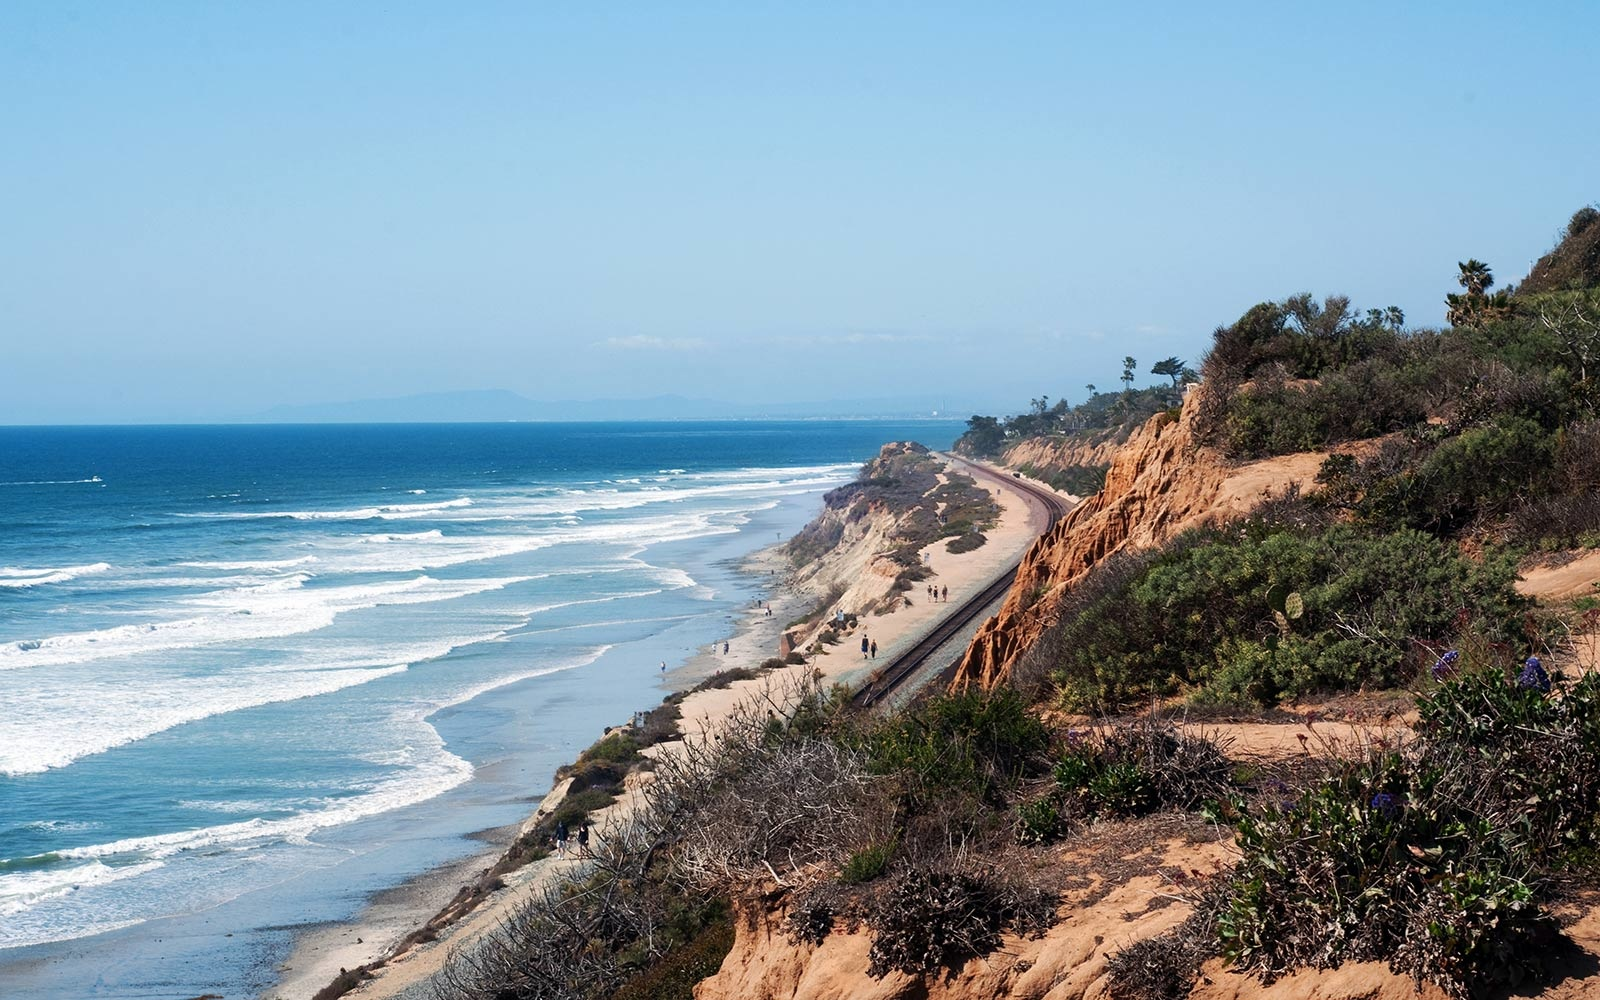 The Pacific Surfliner